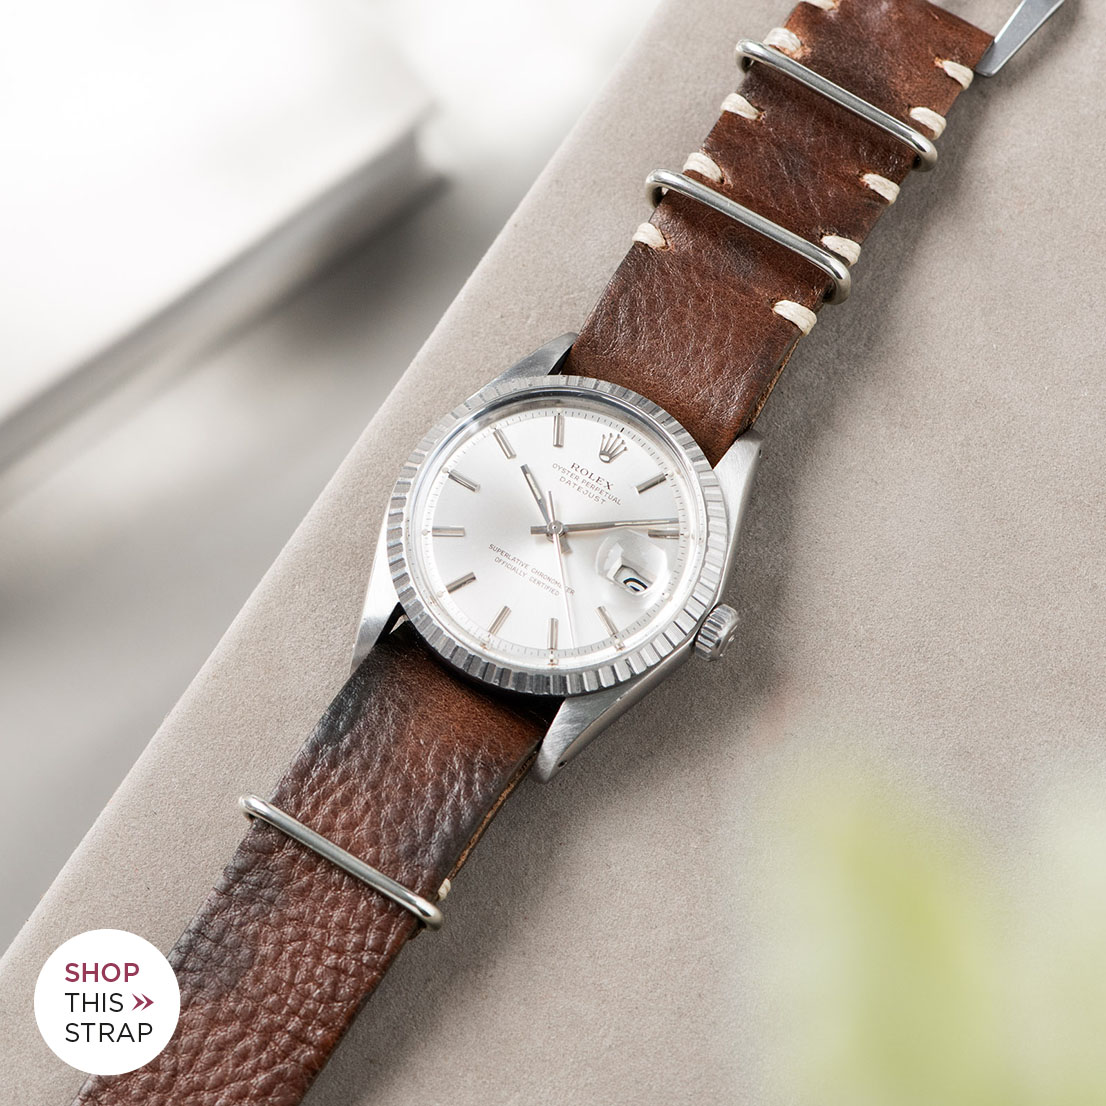 Bulang and sons_Strap Guide_Rolex Datejust Silverdial 1601 1603 1600 1630_LUMBERJACK BROWN NATO LEATHER WATCH STRAP